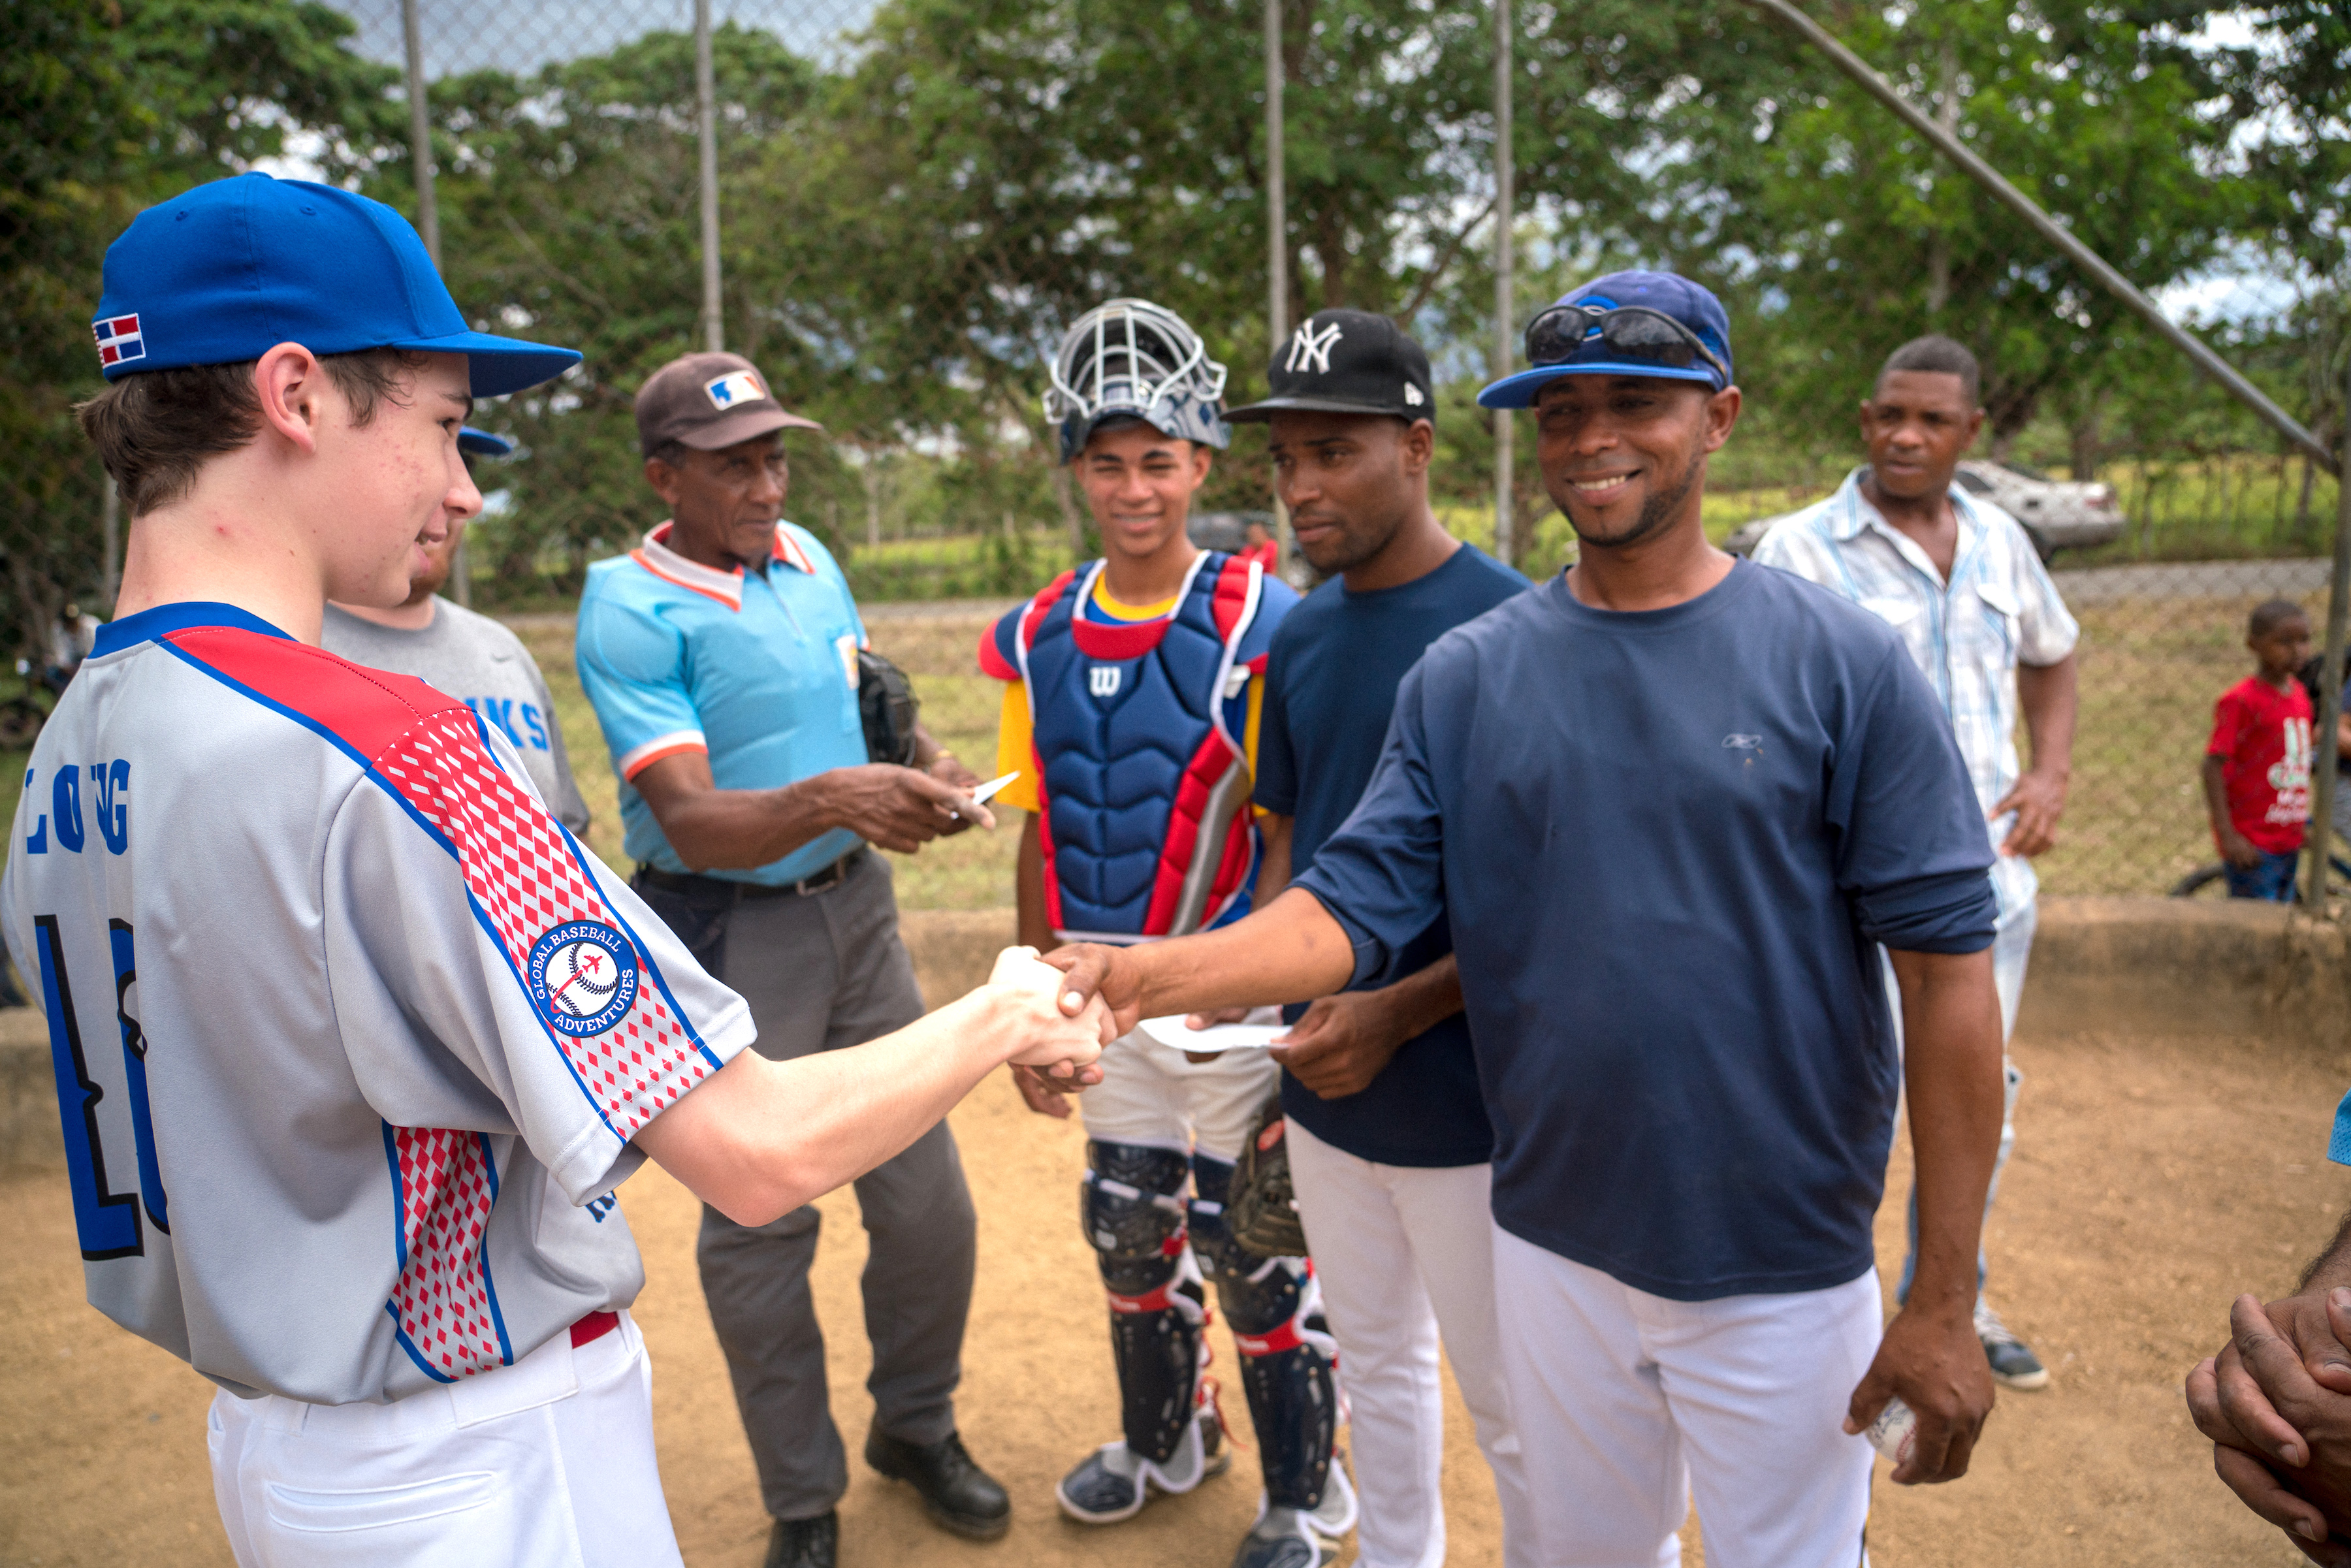 Dominican Republic Baseball Community Service